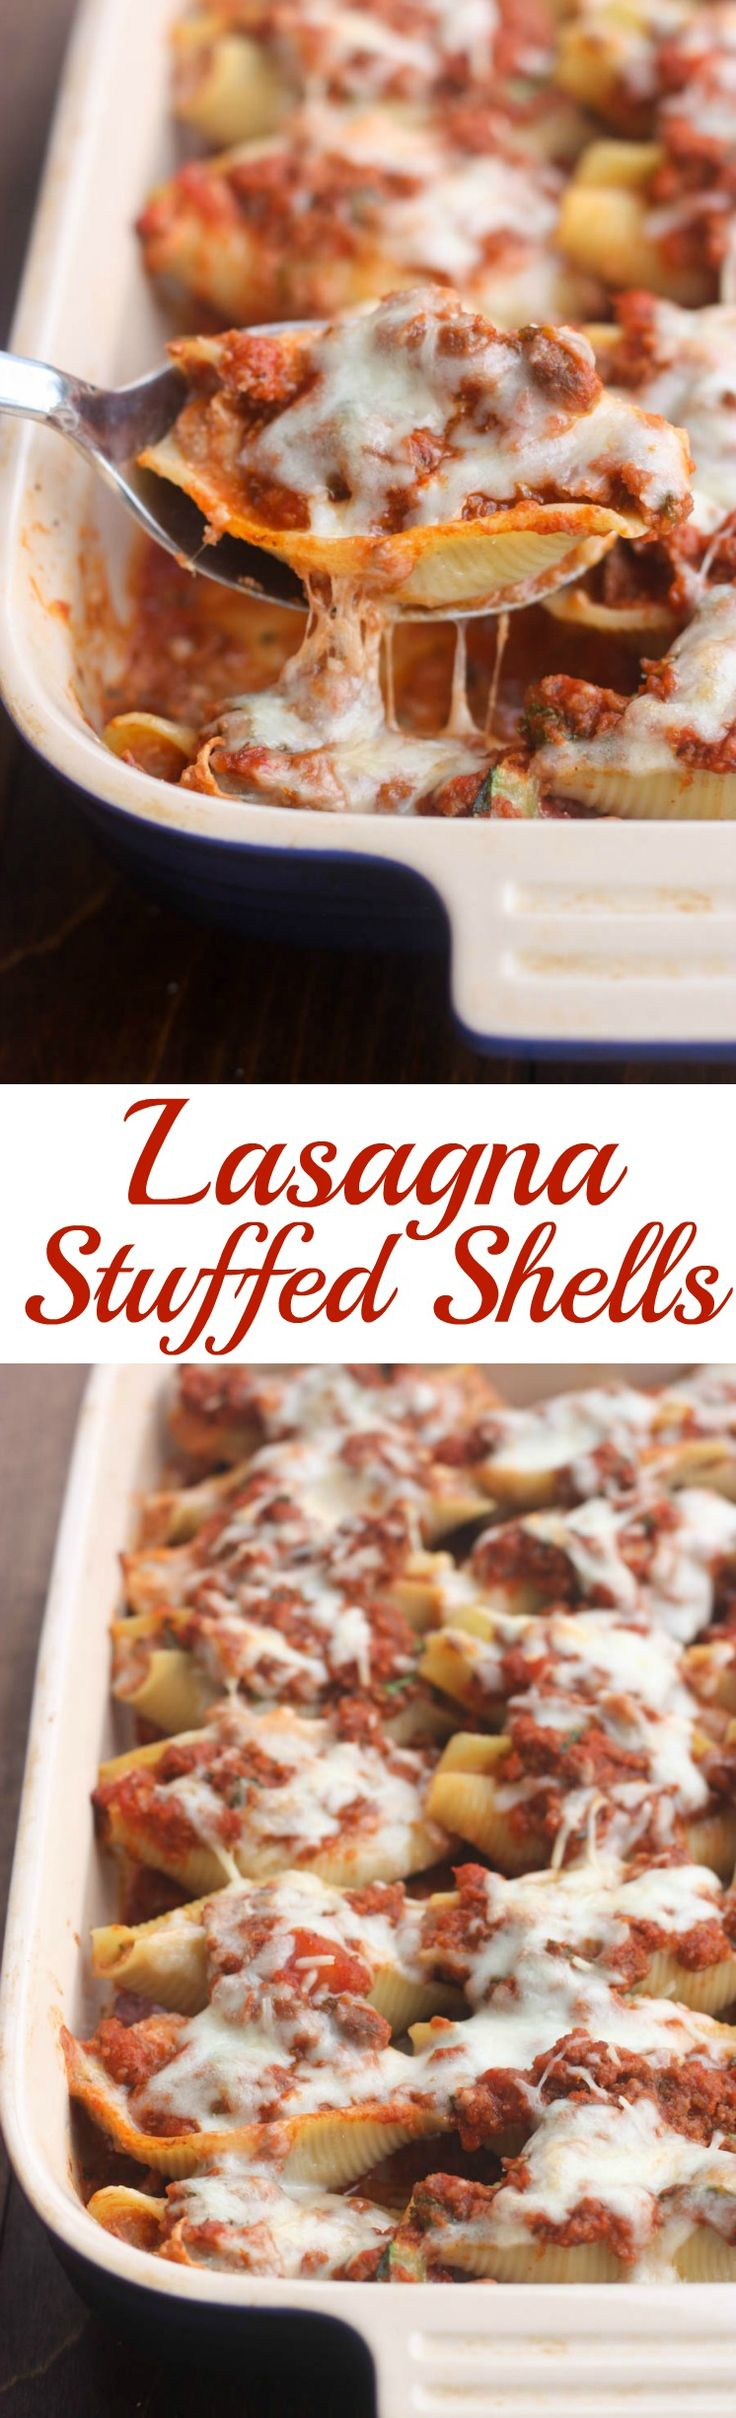 Lasagna Stuffed Shells | Noodles stuffed with a cheesy lasagna filling, with extra sauce and cheese on top. One of our favorite dinners! | Tastes Better From Scratch: